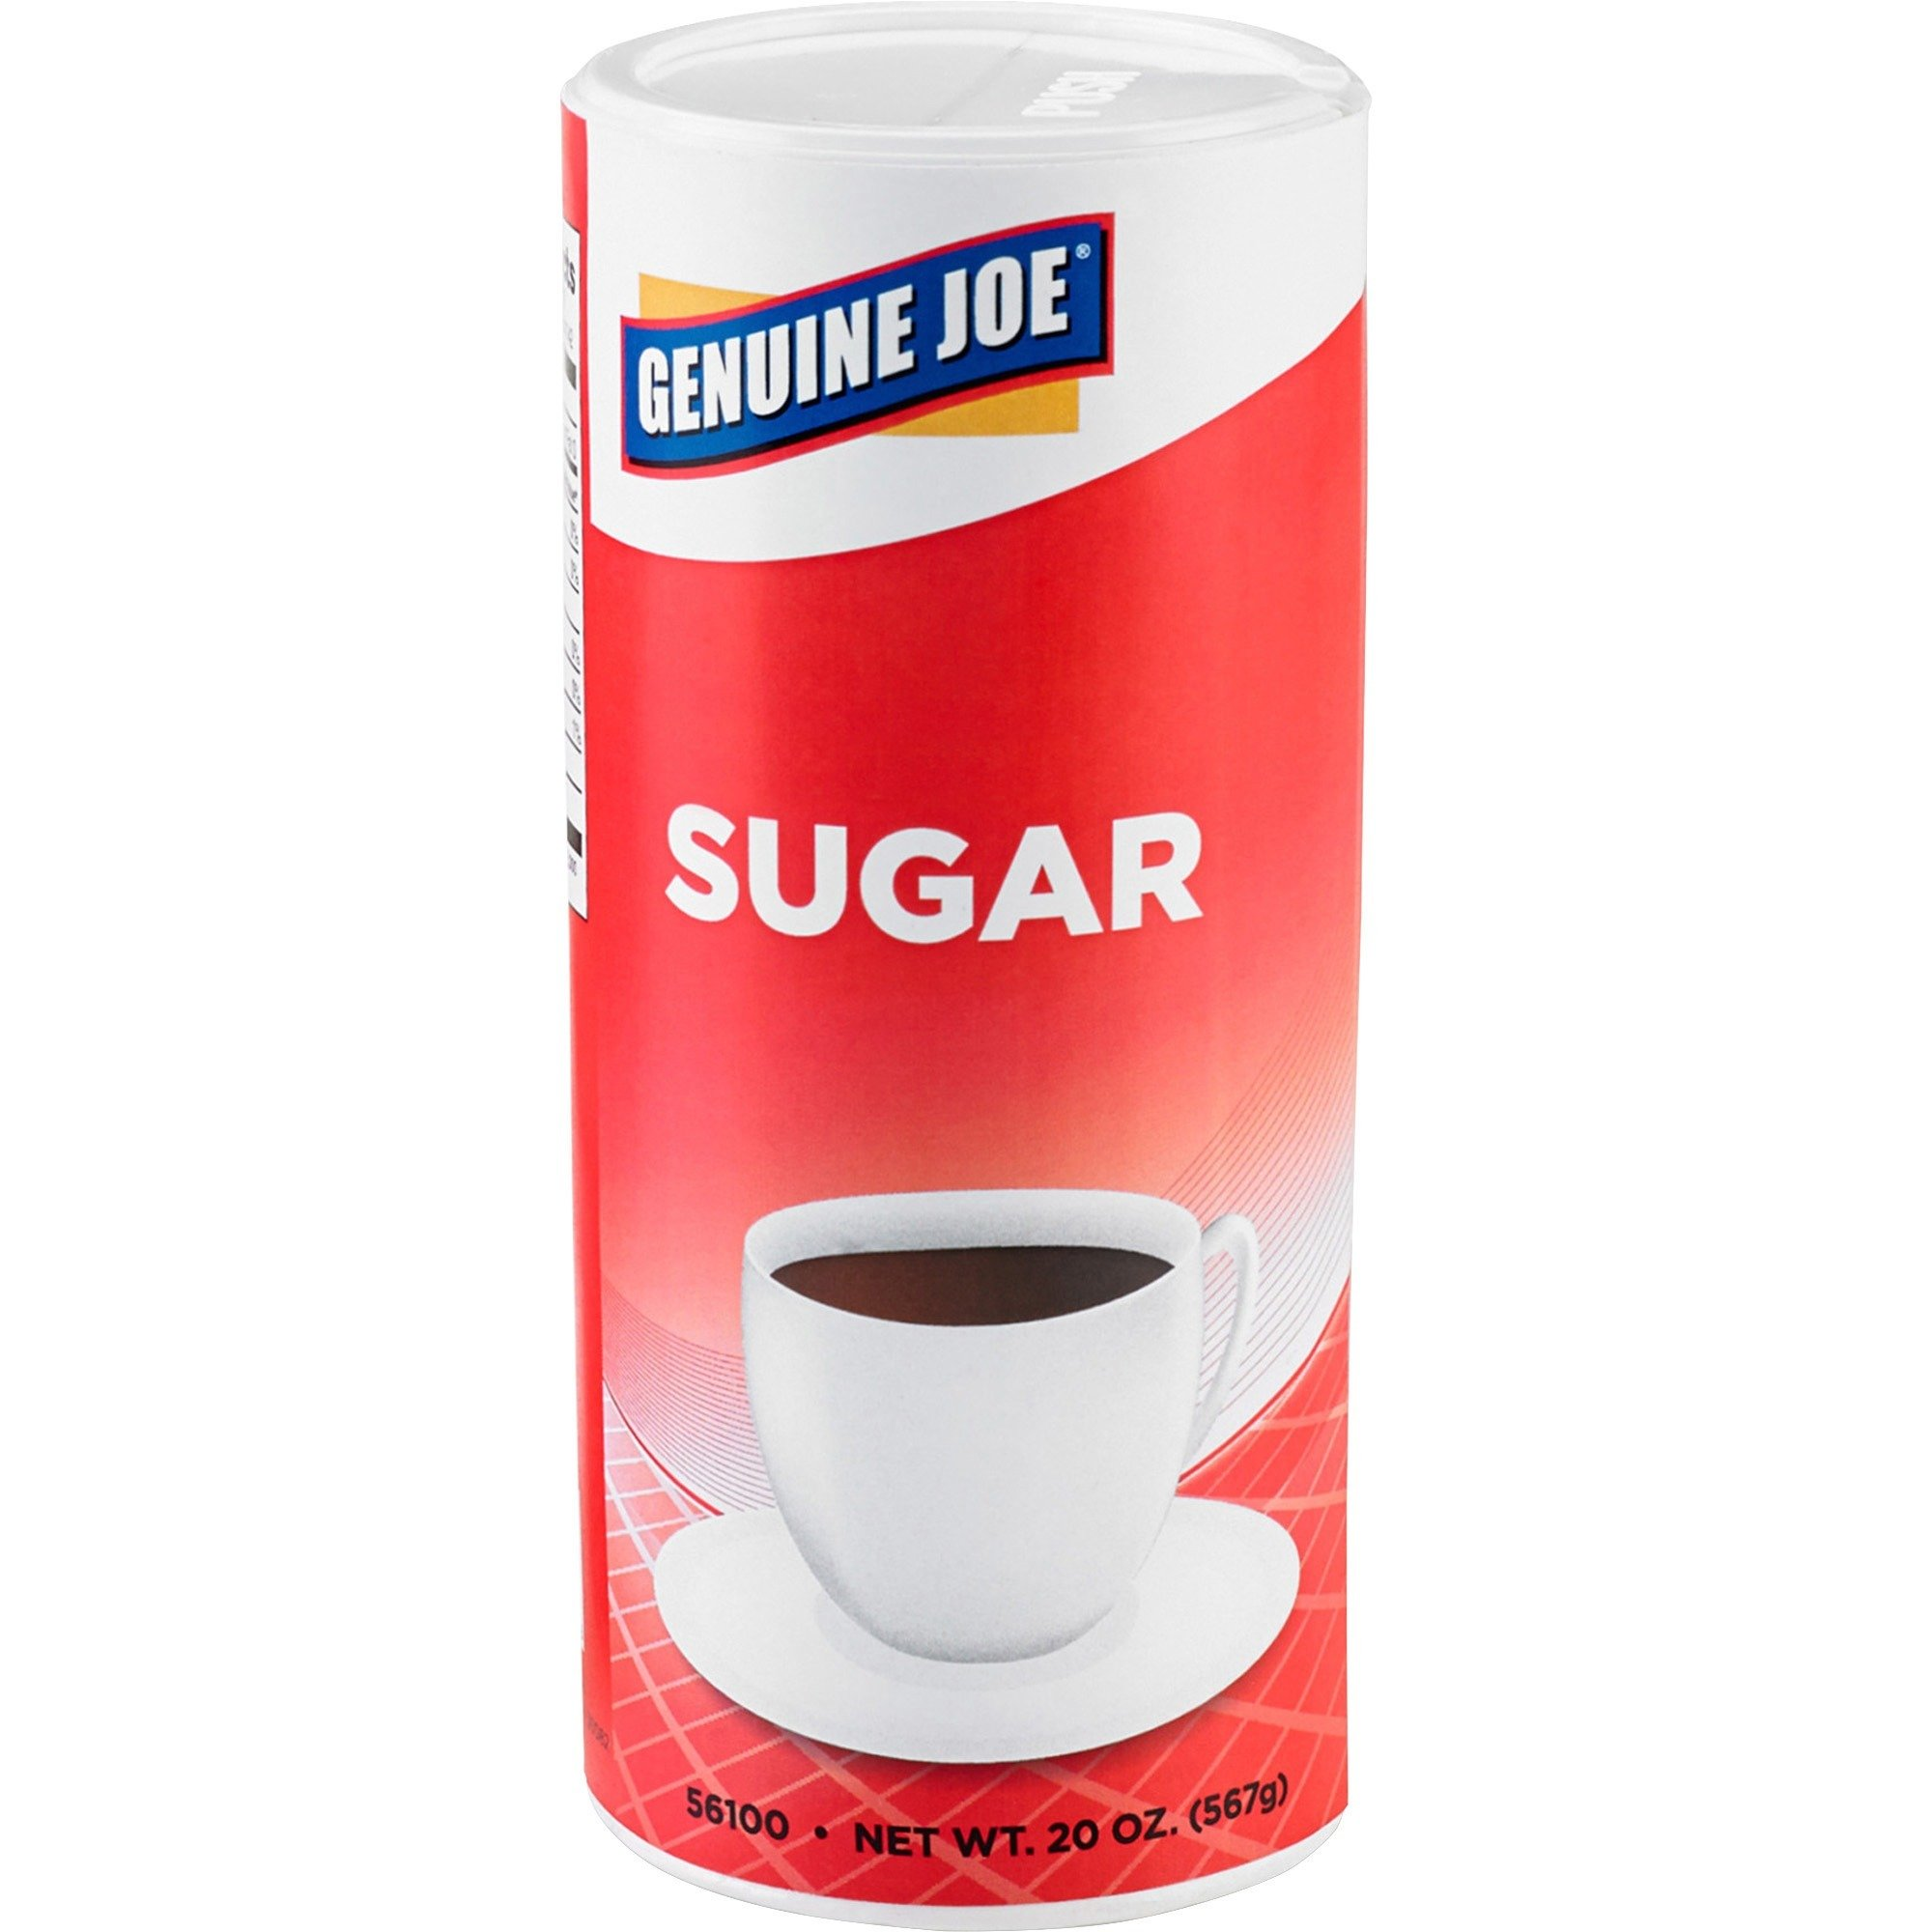 Genuine Joe GJO56100CT Natural Sweetener Pure Cane Sugar, 20 oz Canister (8 Packs of 3) by Genuine Joe